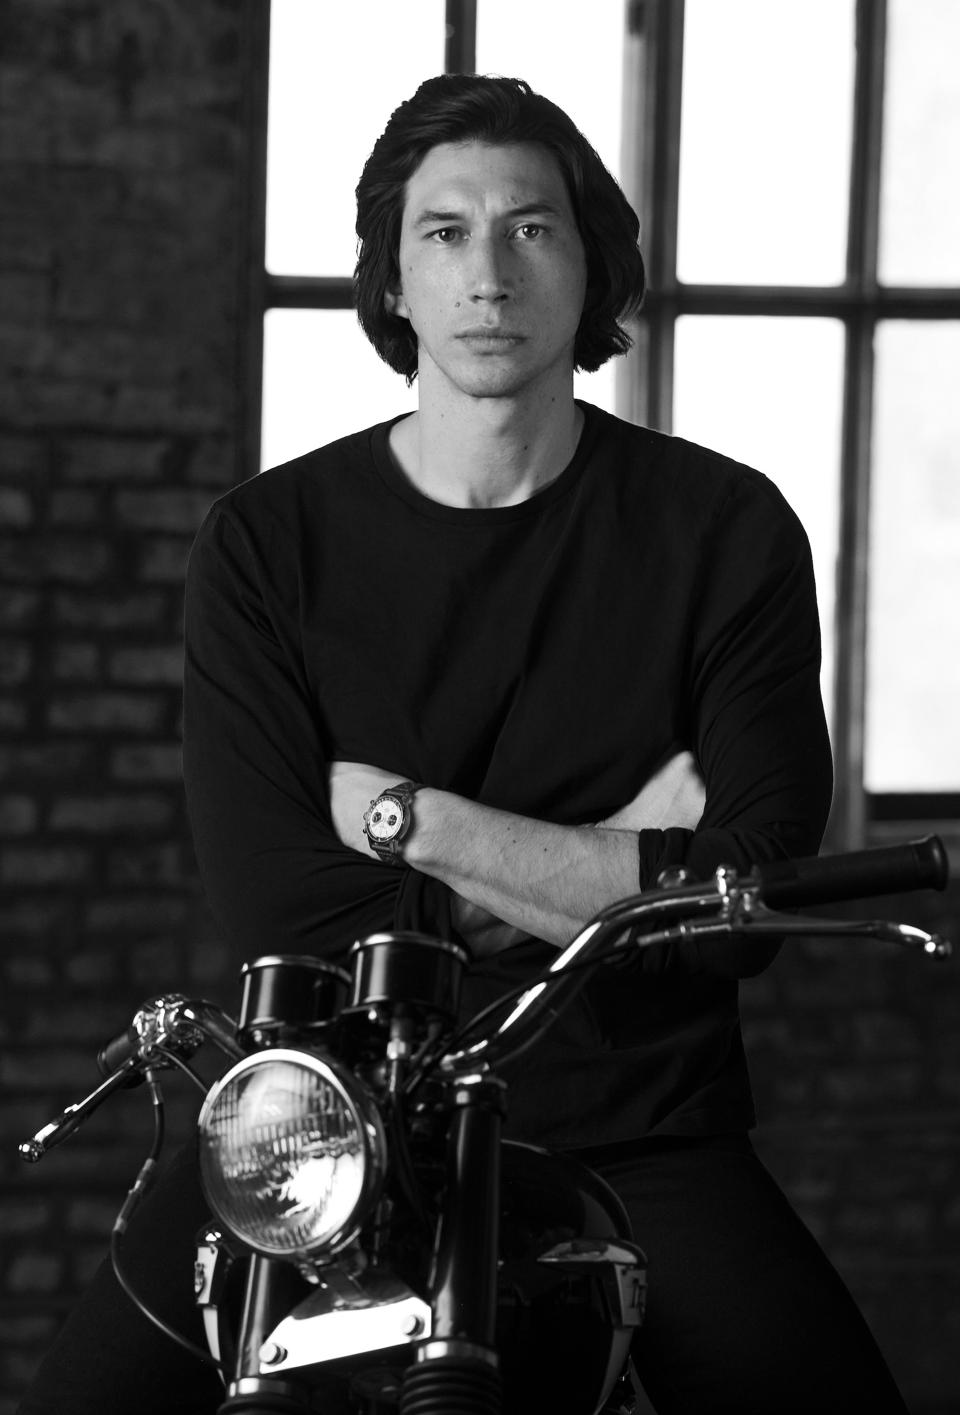 Adam Driver in Italy where he's filming the House of Gucci movie with Lady Gaga